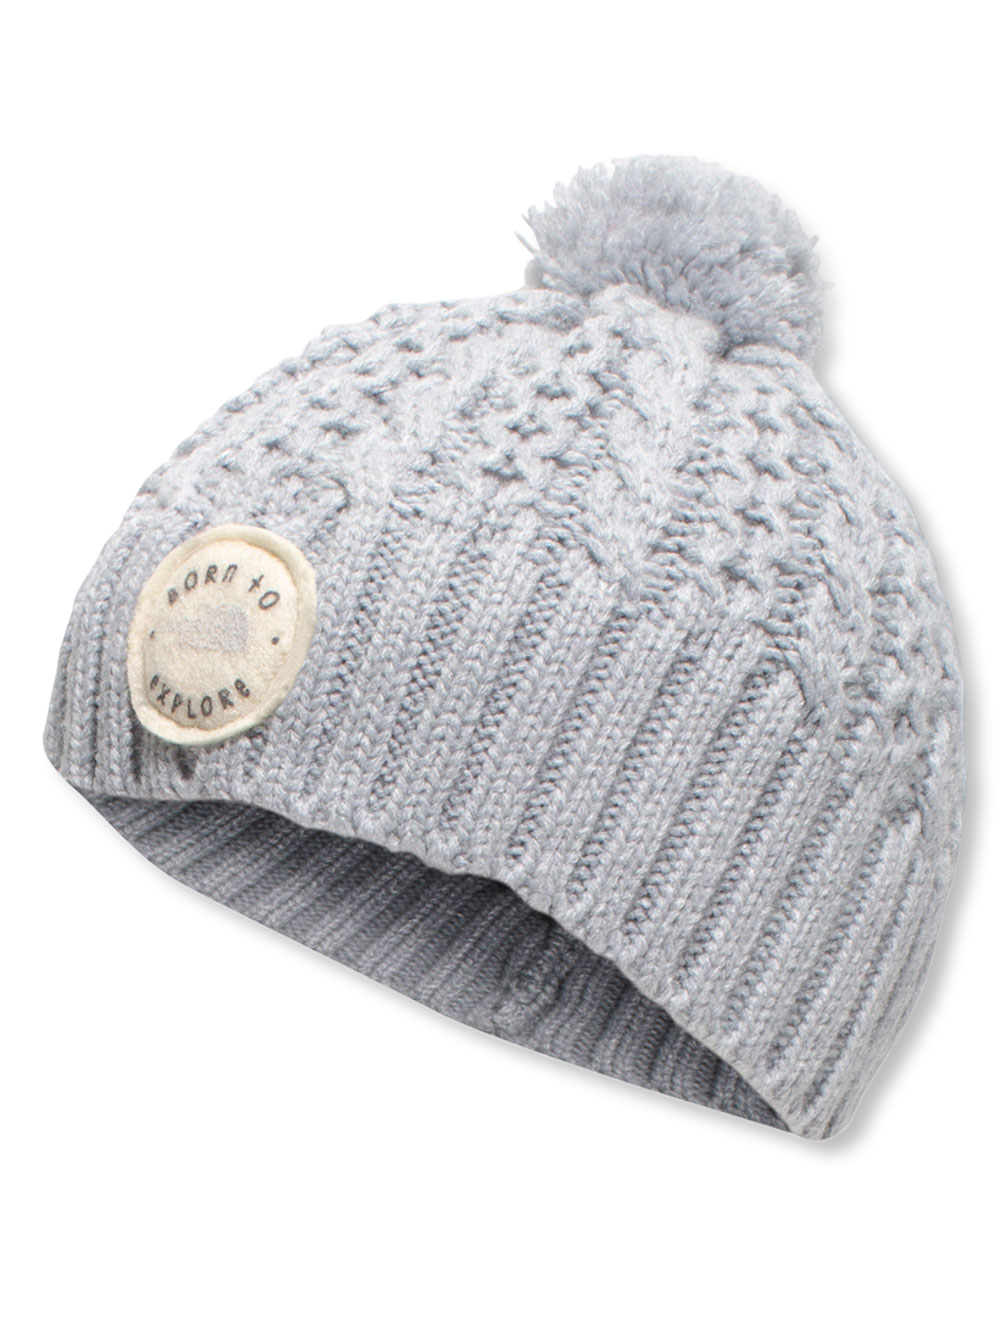 d321b6fa5 Baby Boys' Minna Beanie by The North Face in Tnf light gray heather ...